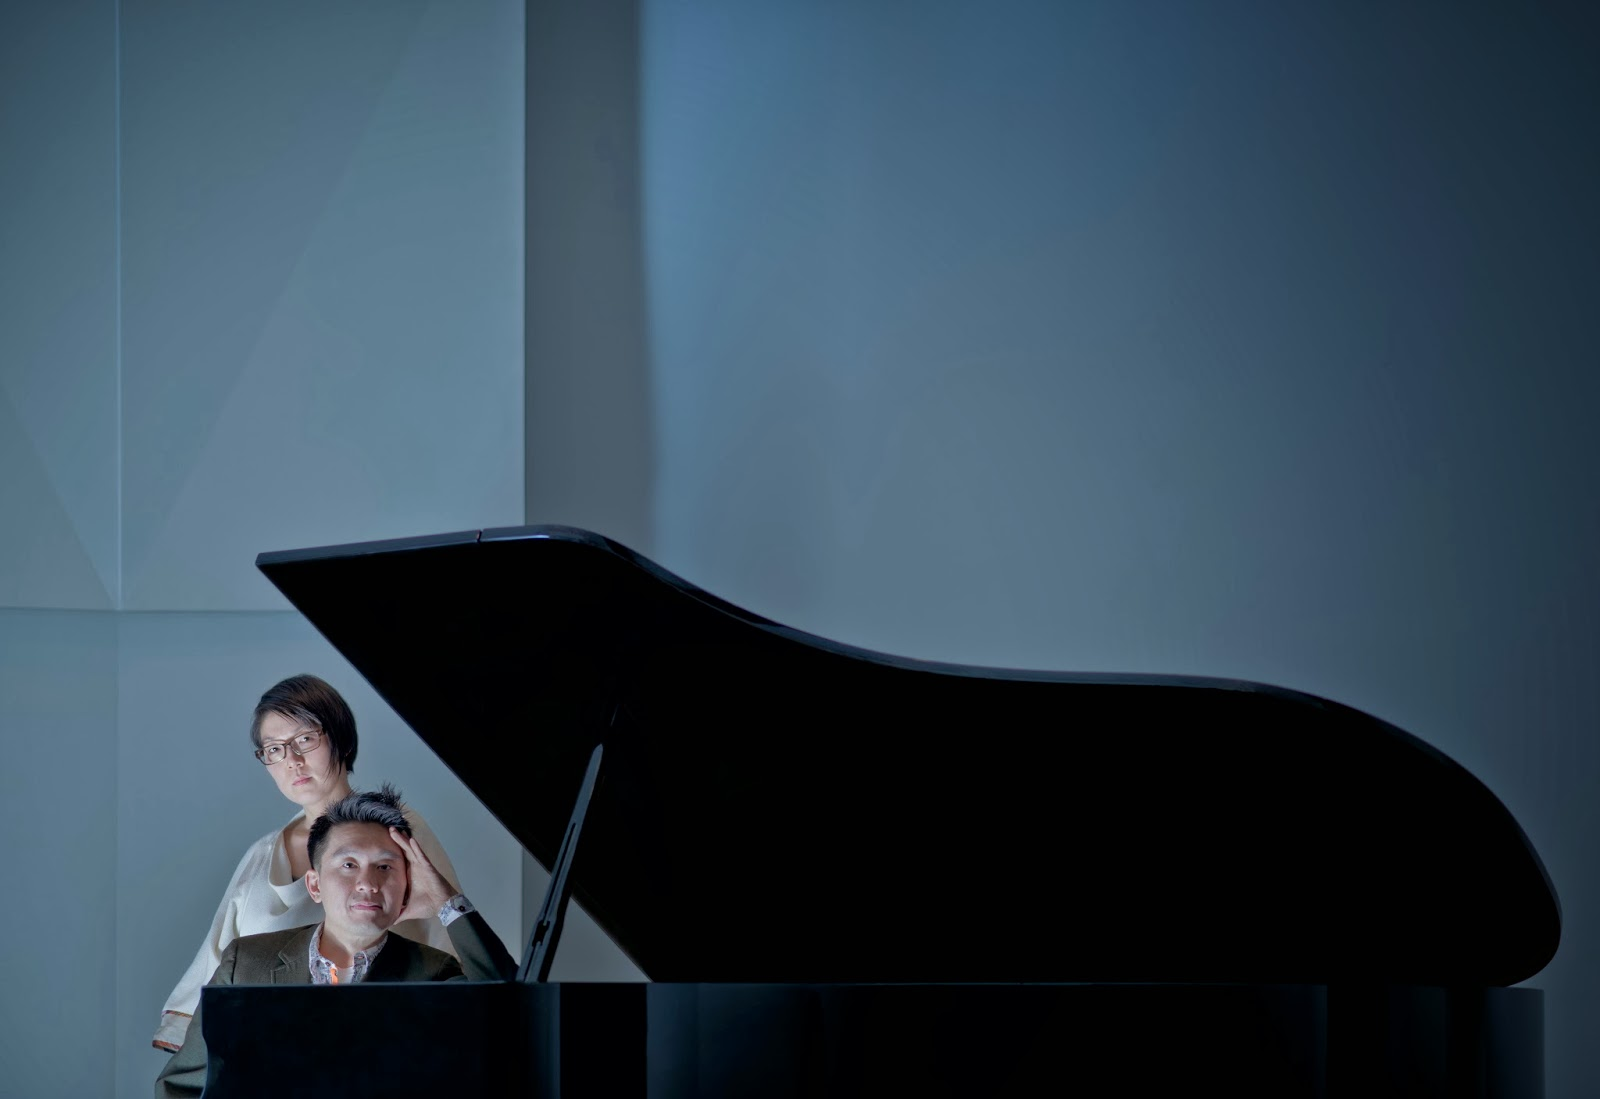 Susie J Lee and Byron Au Yong at the piano